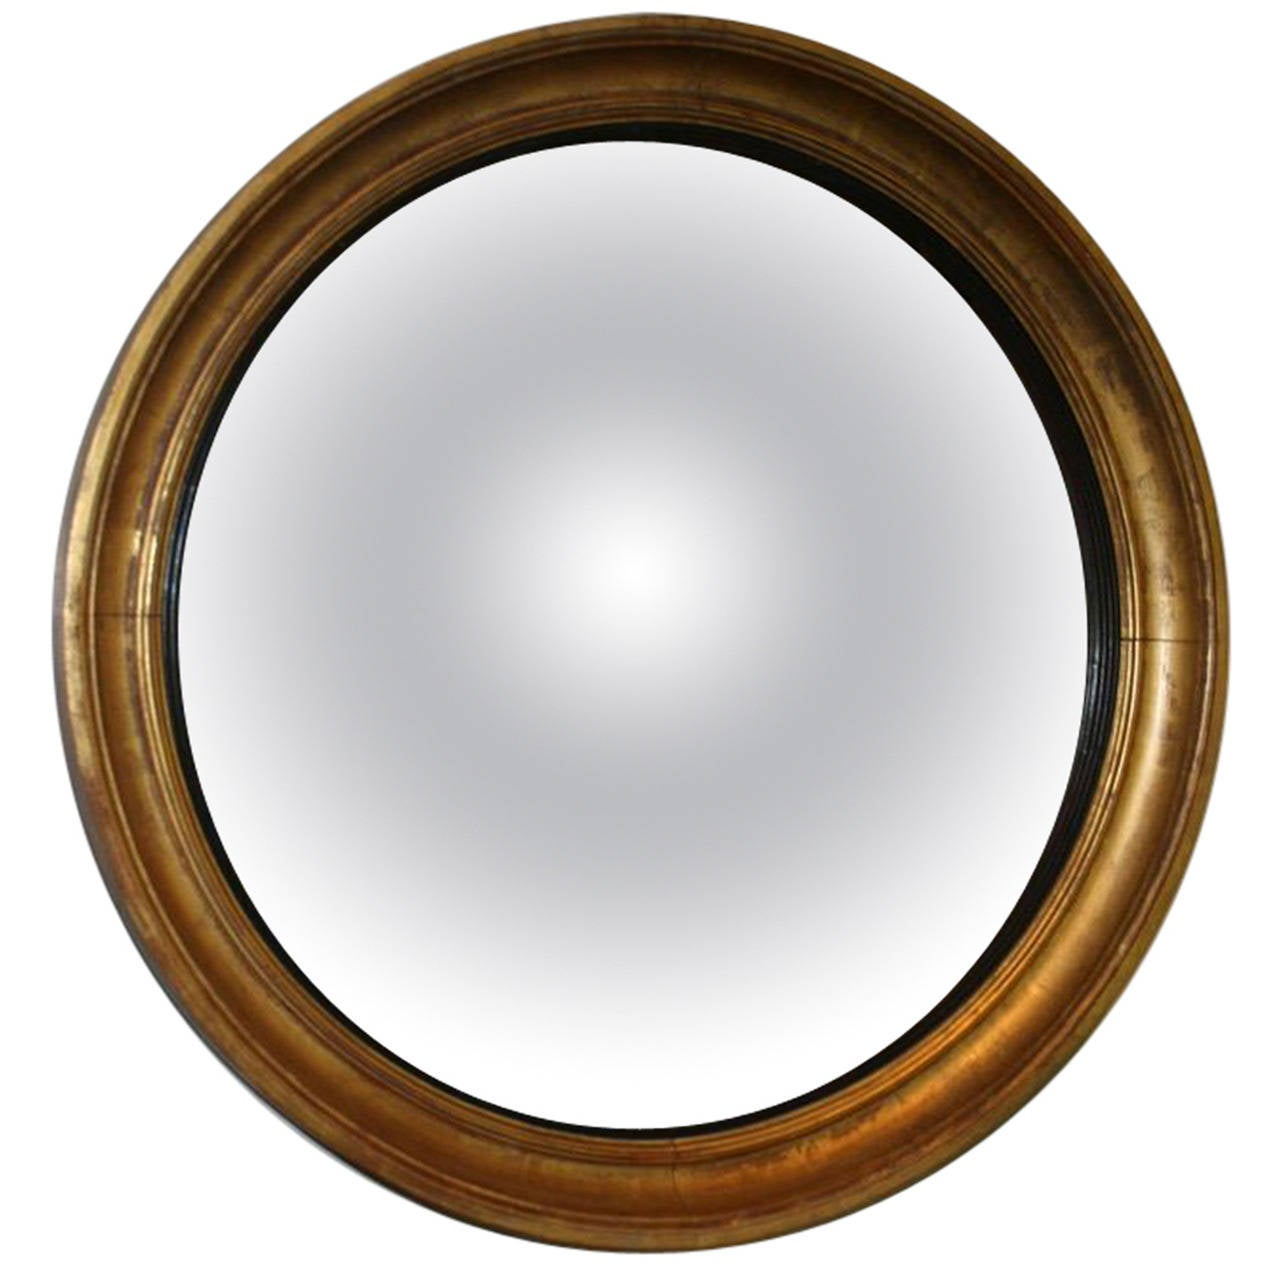 19th century regency giltwood convex mirror at 1stdibs for Convex mirror